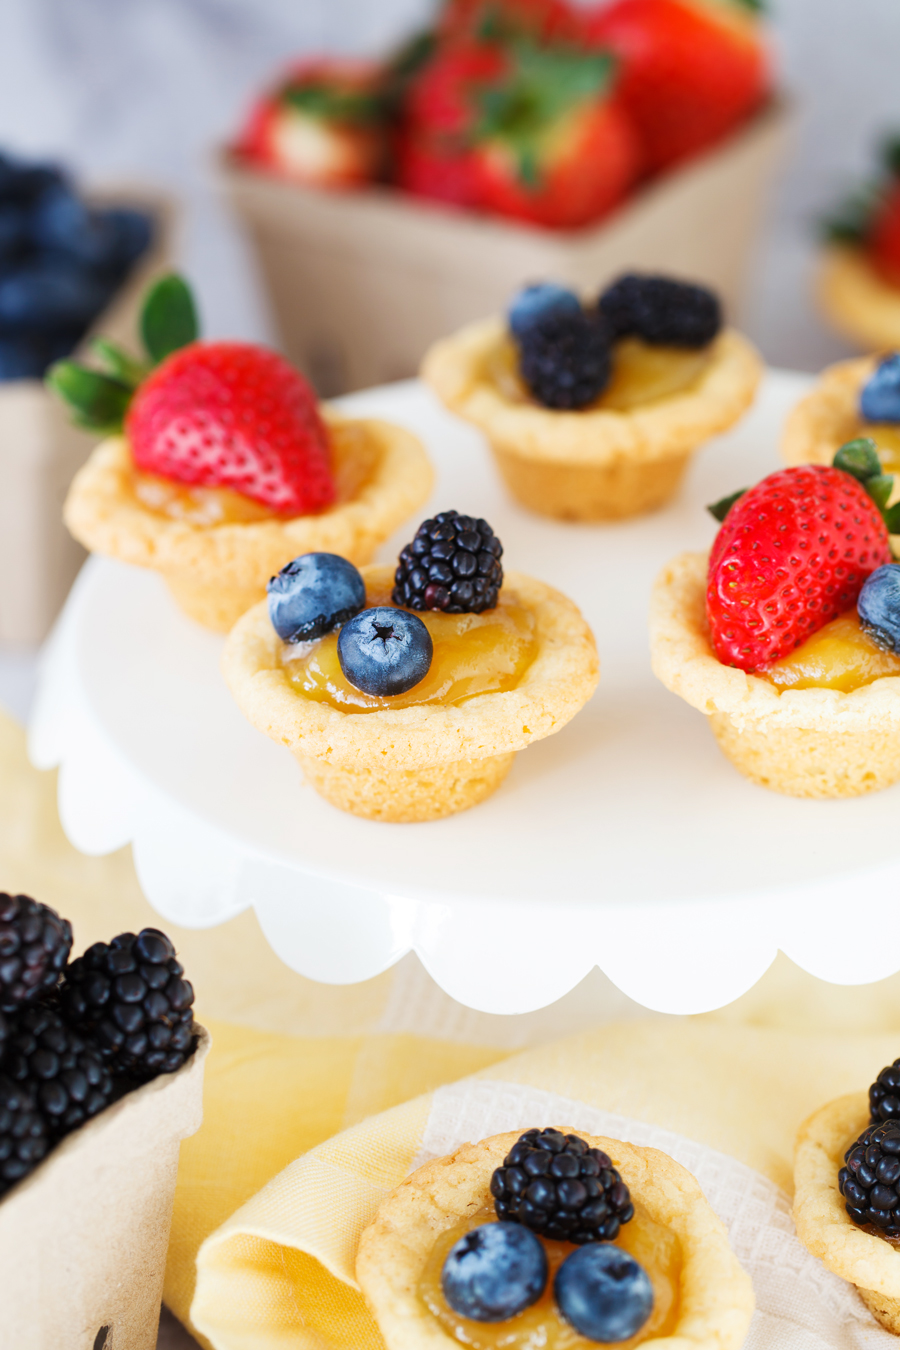 Sugar Cookie Lemon Tarts: a yummy sugar cookie tart filled with lemon curd, topped with fresh berries, and baked in a mini muffin tin.